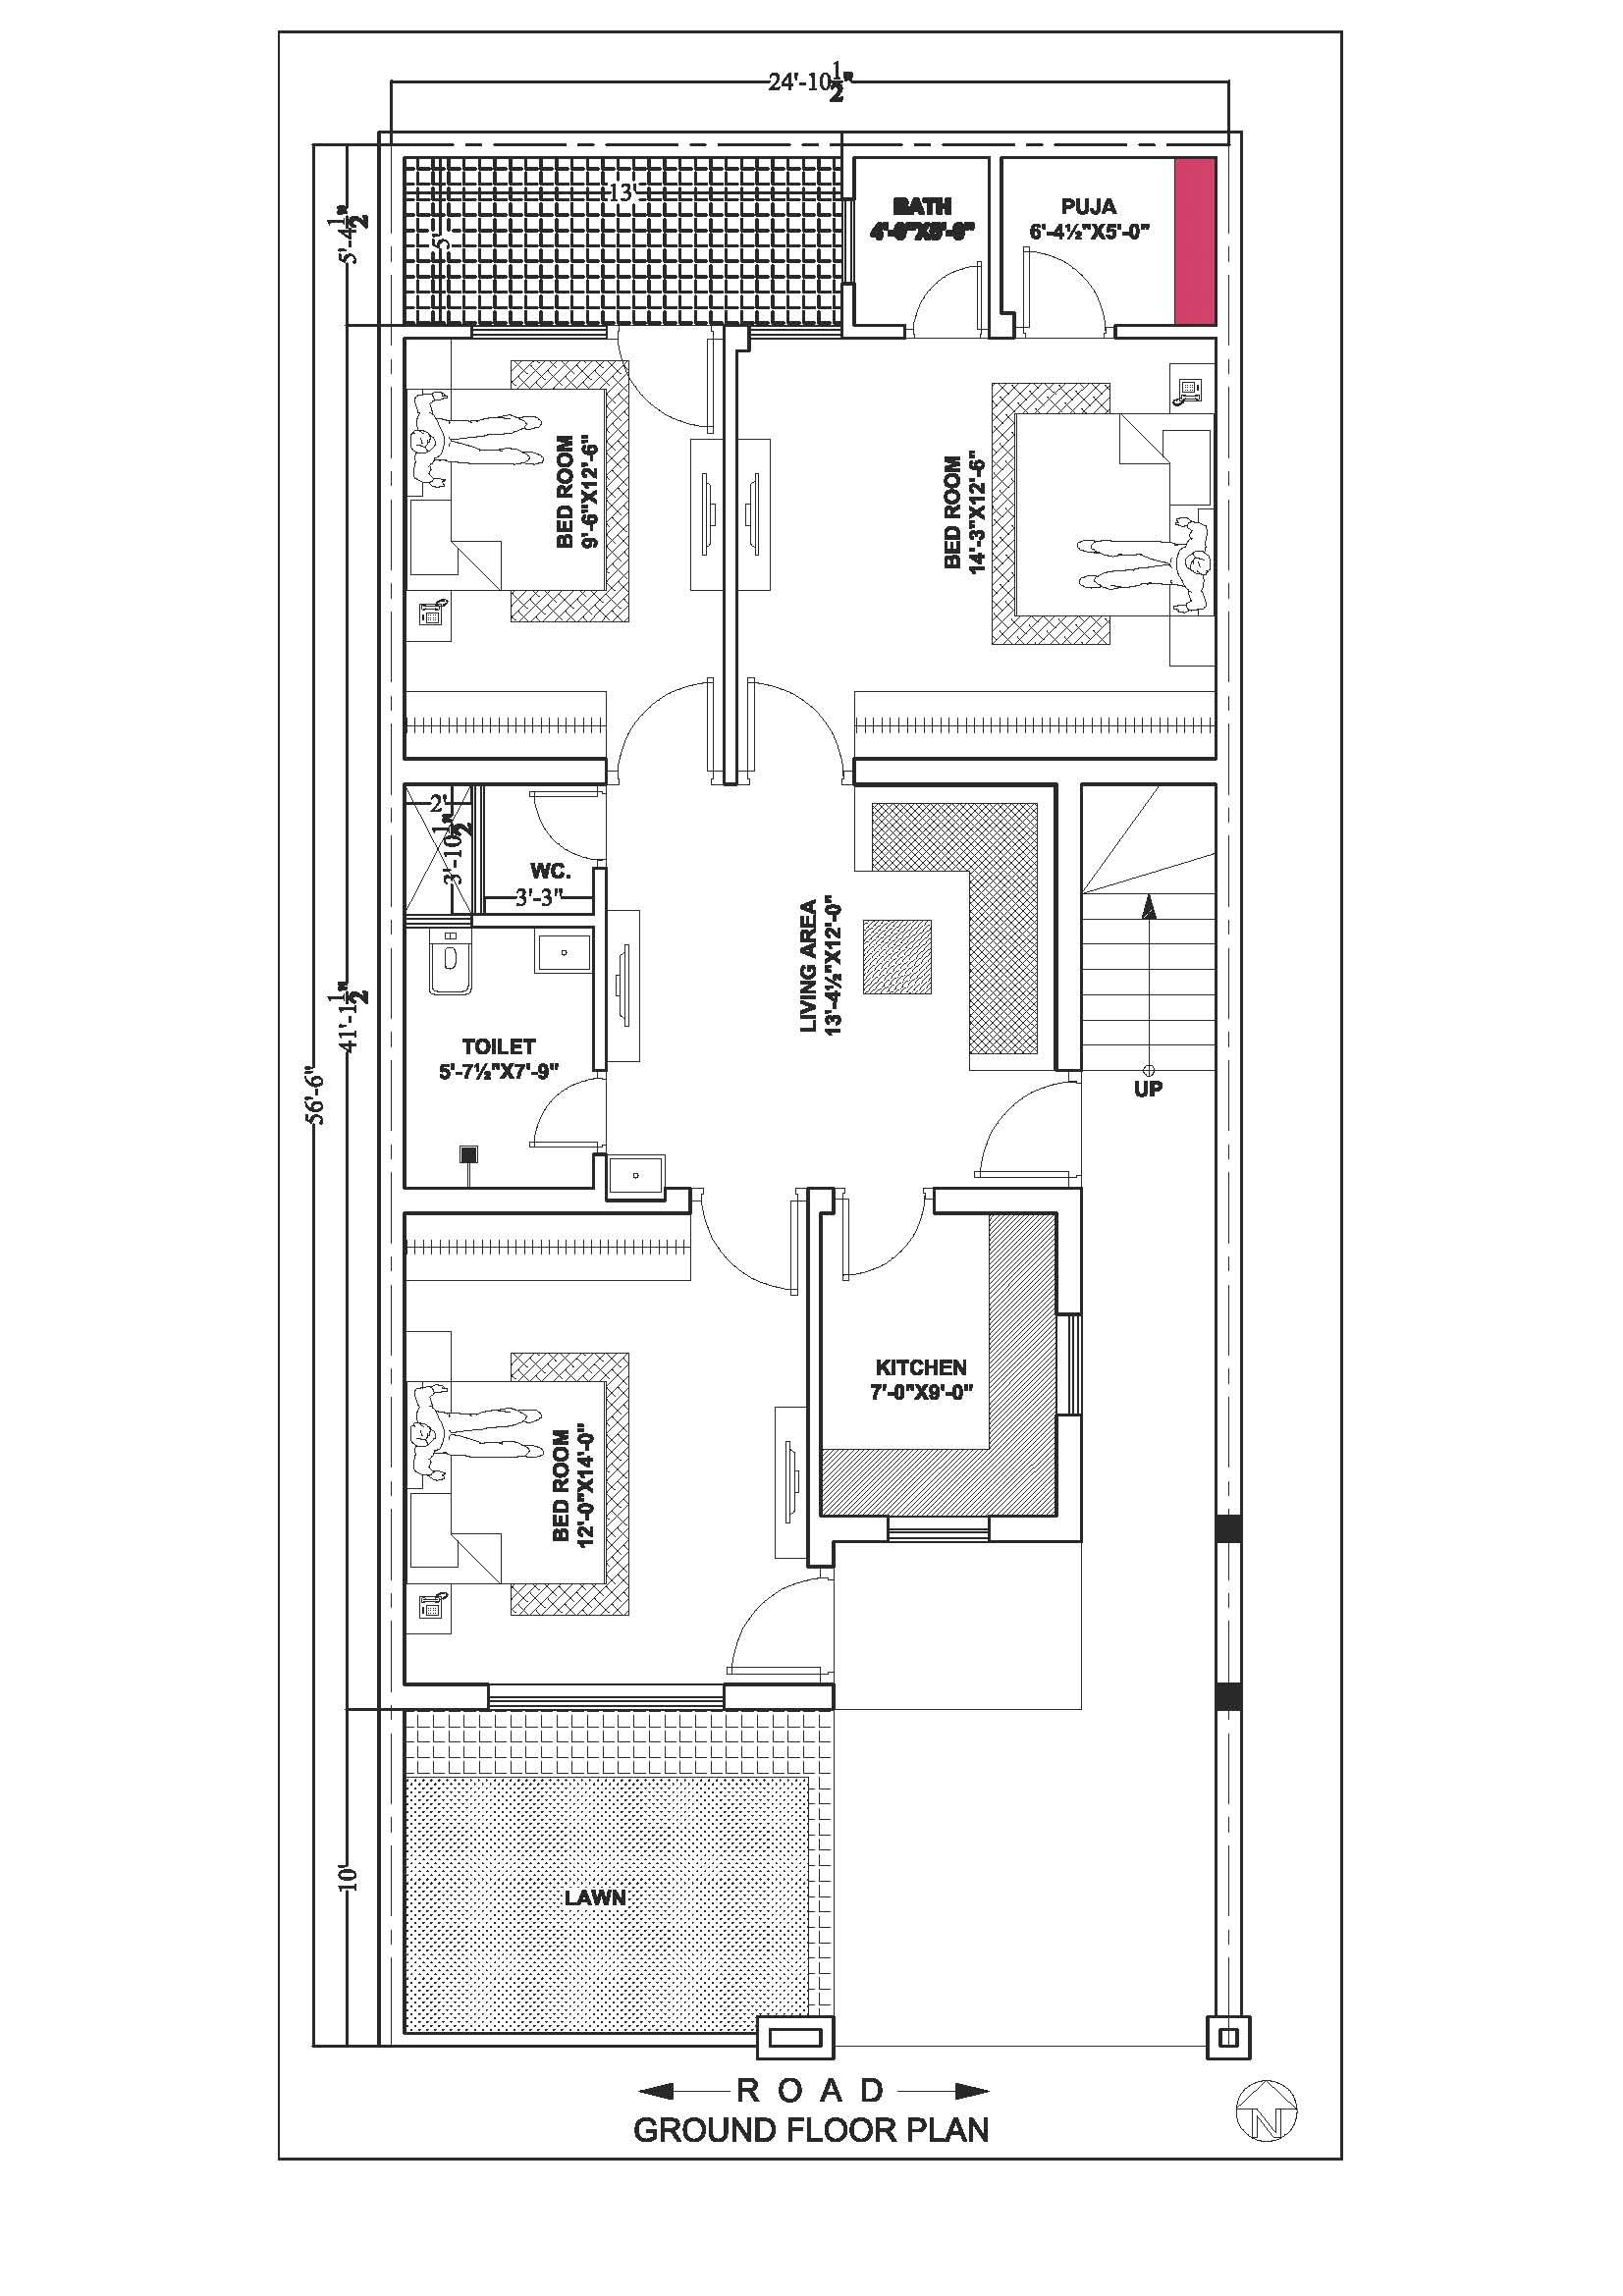 24 56 Ground Floor Second Option Ground Floor Plan House Map Duplex House Plans